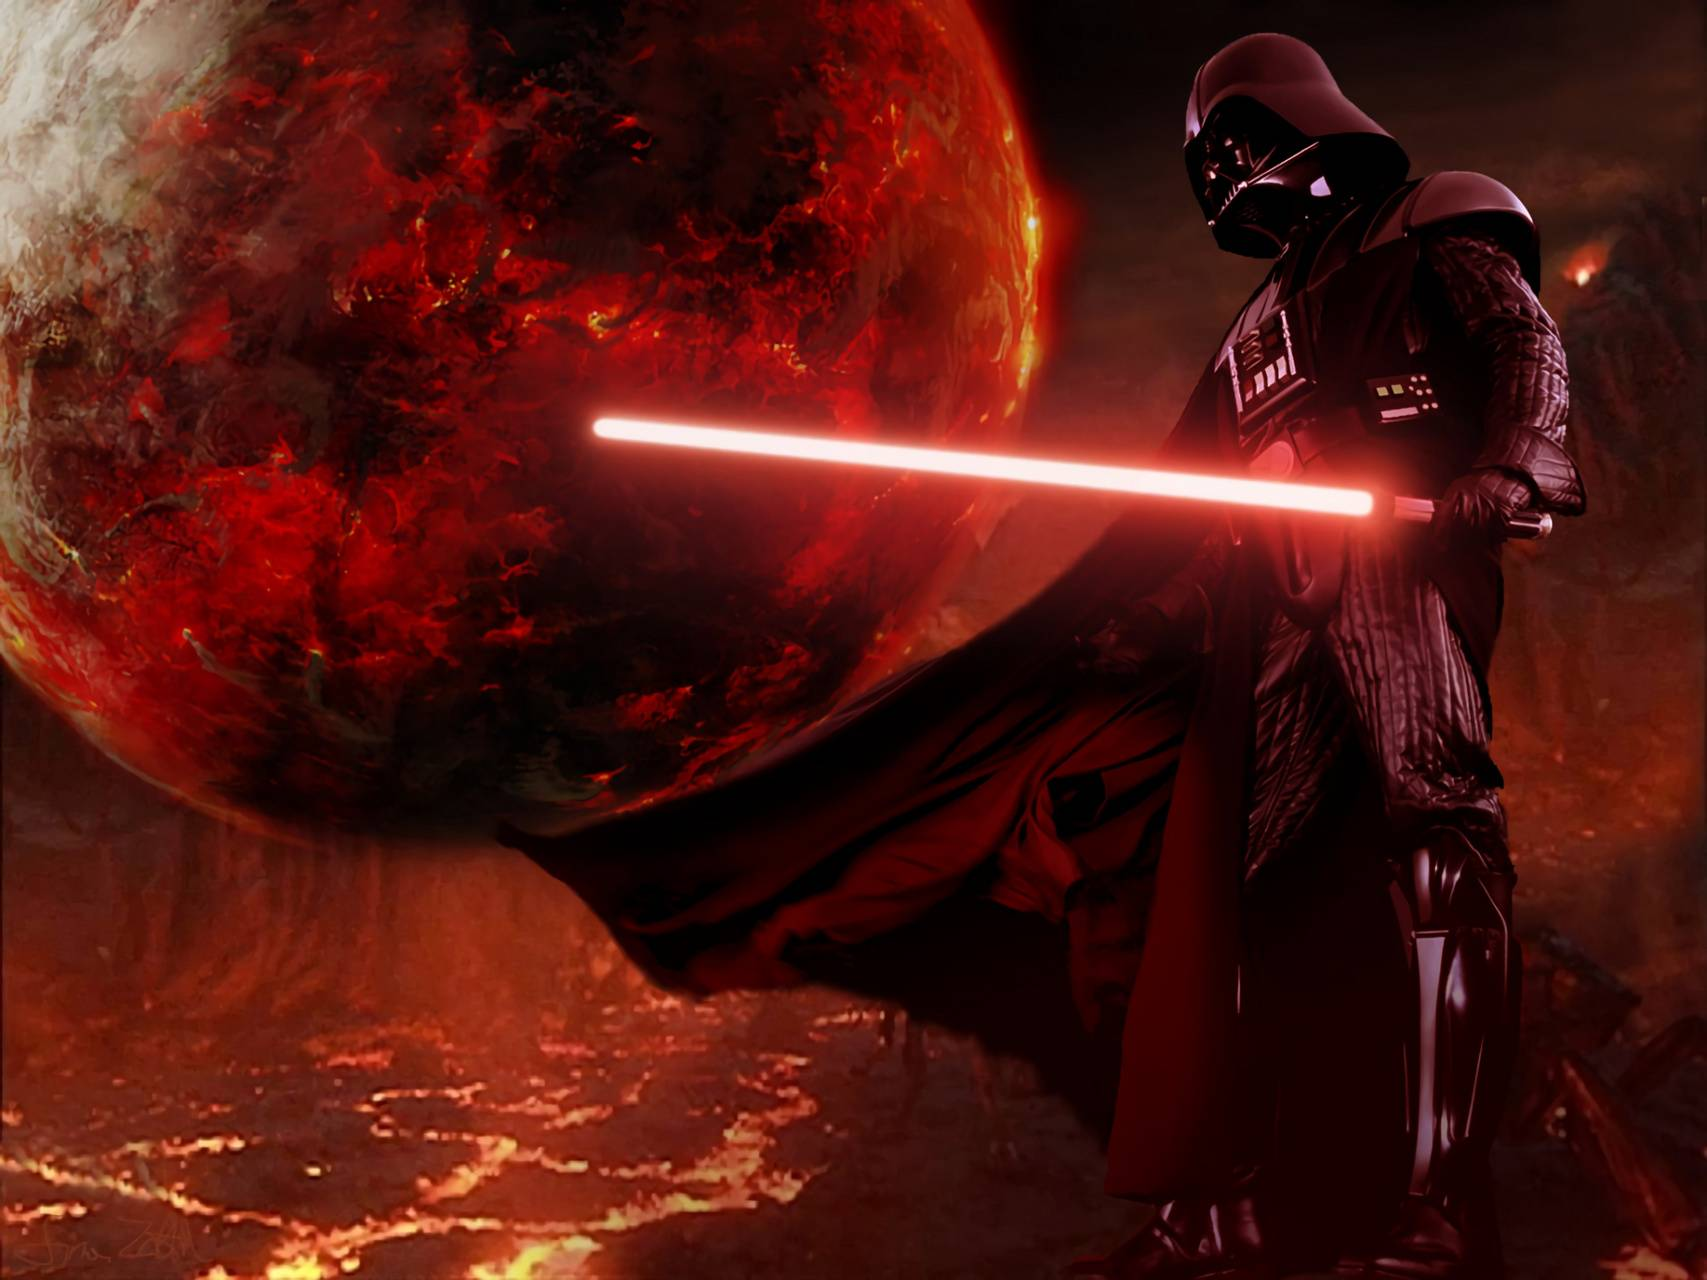 Vader Mustafar Wallpaper By Darthbaren 9a Free On Zedge